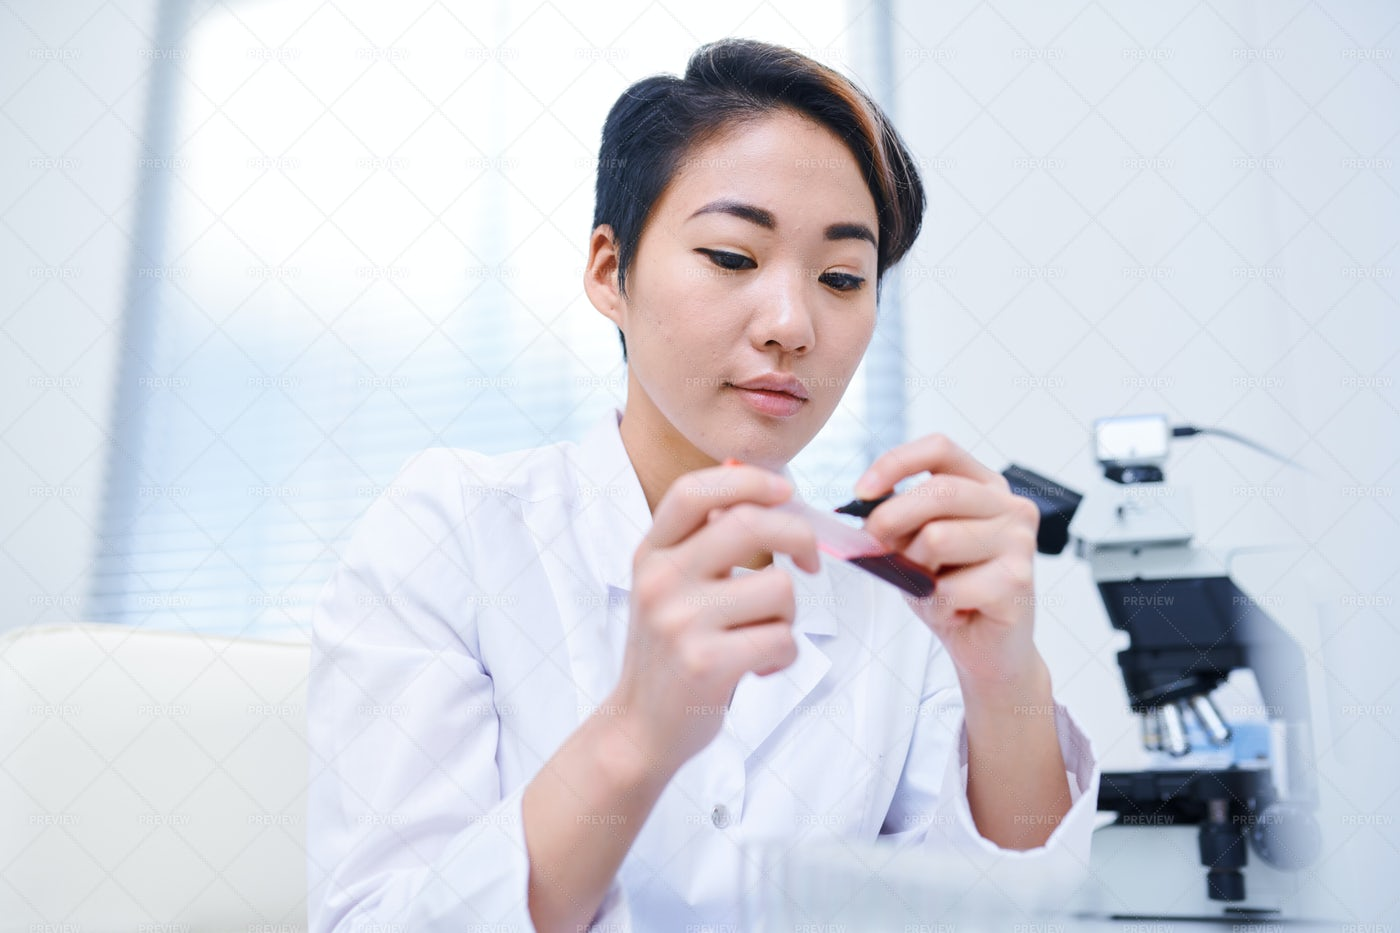 Laboratory Worker Writing On Test...: Stock Photos